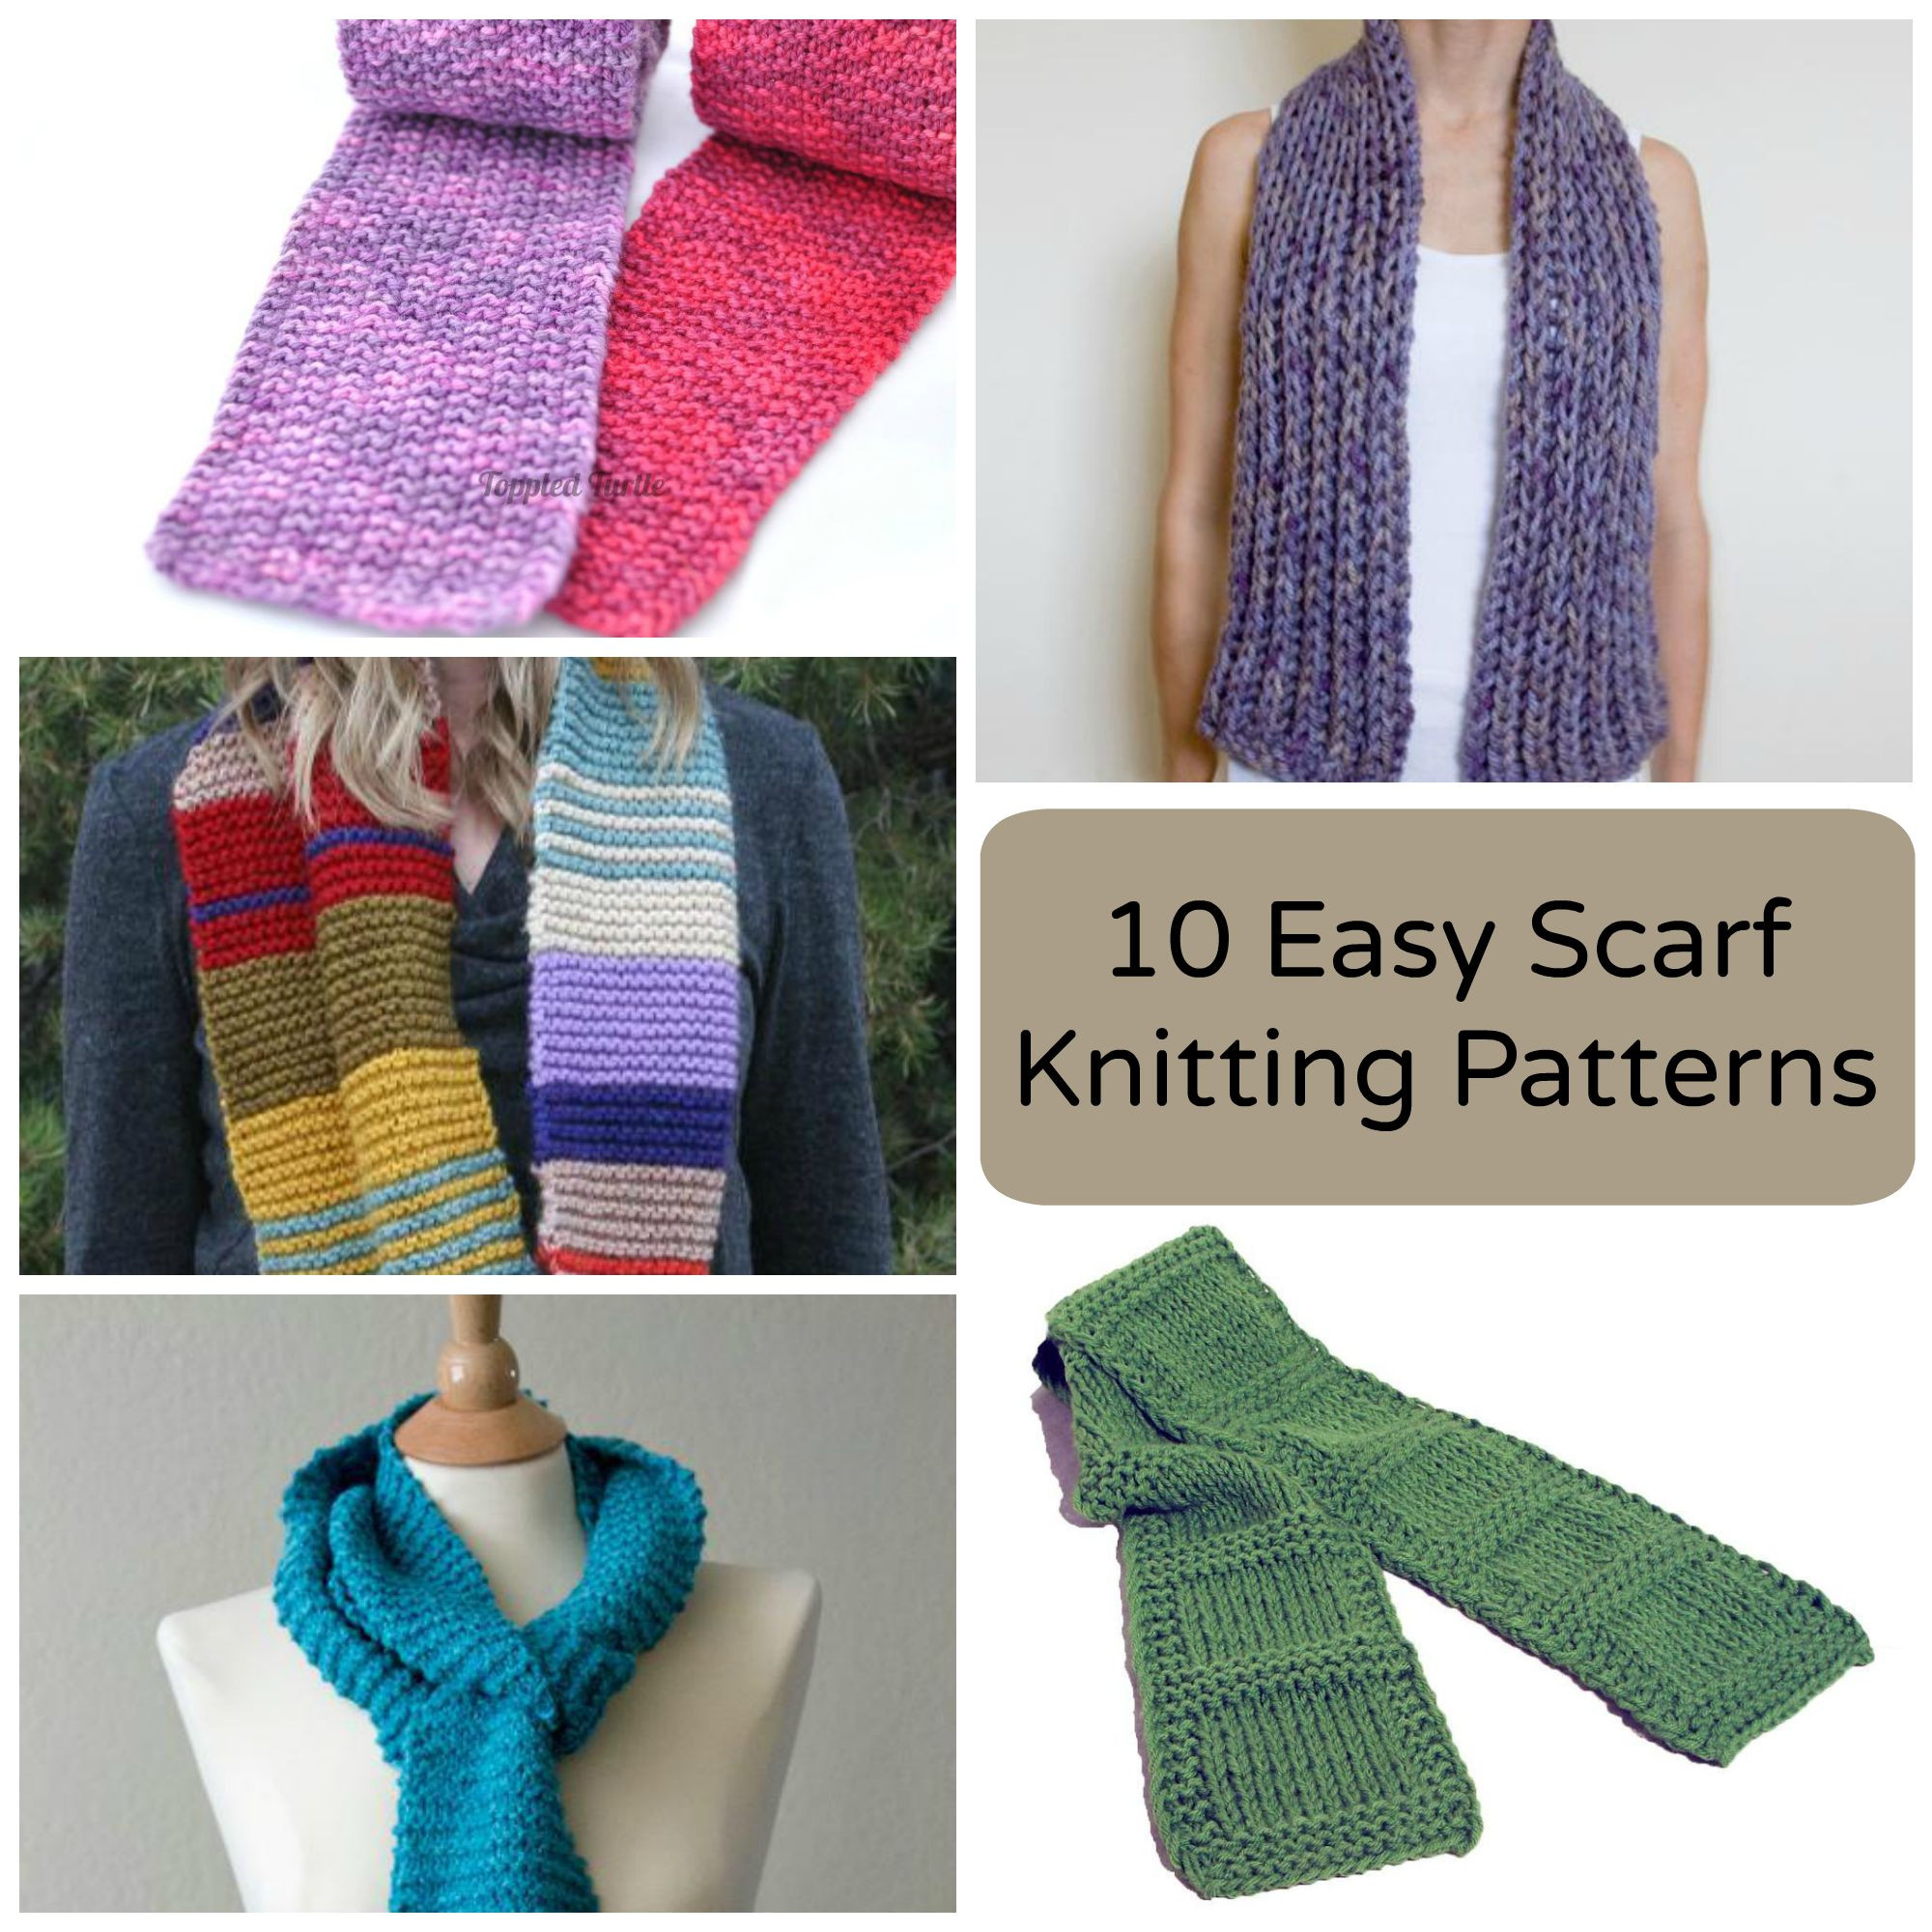 Easy Scarf Knitting Patterns Luxury 10 Easy Scarf Knitting Patterns for Beginners Of Attractive 48 Ideas Easy Scarf Knitting Patterns